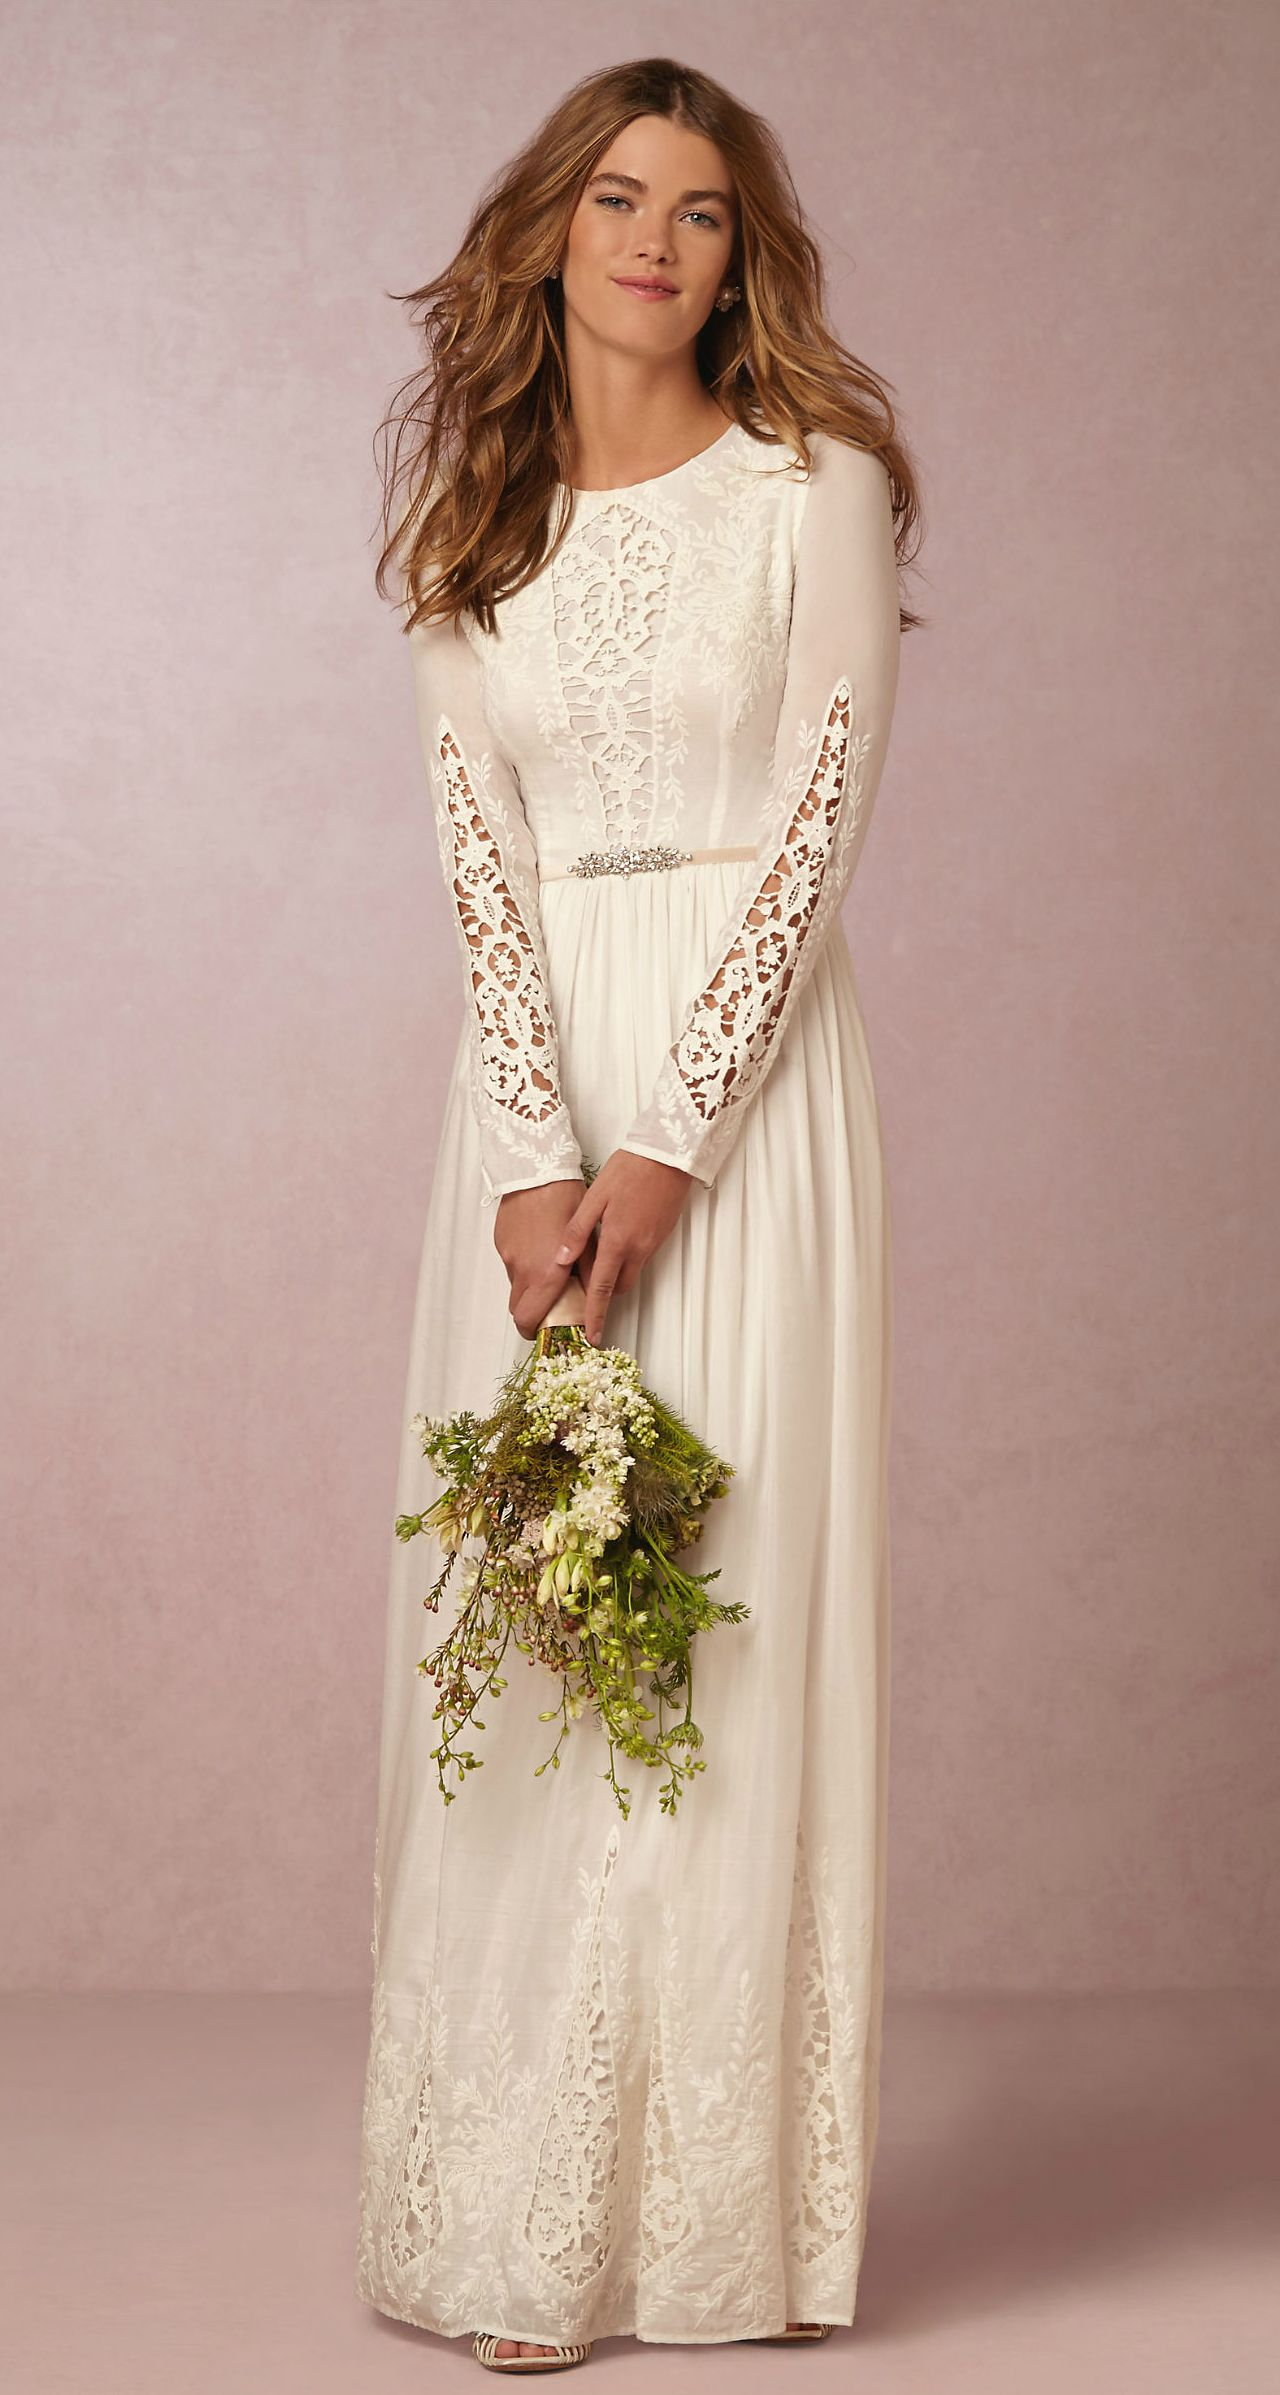 Long sleeve wedding dress for a beach or boho wedding style | McKenna dress from BHLDN